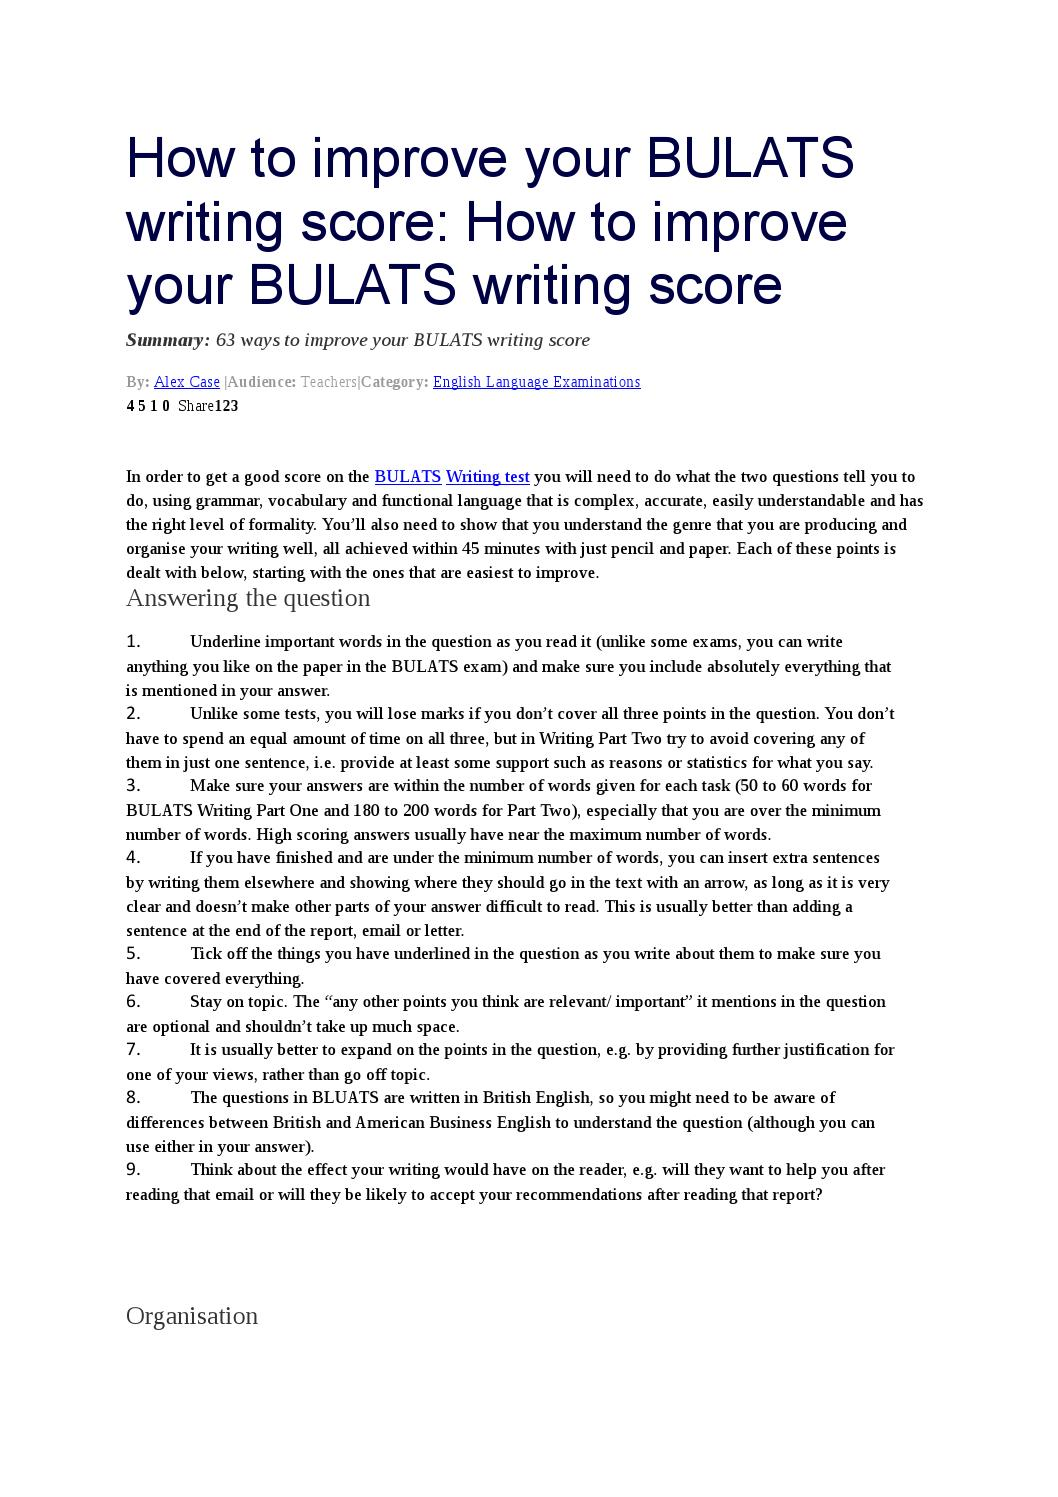 How To Improve Your Bulats Writing Score By Yeliz zelik  Issuu